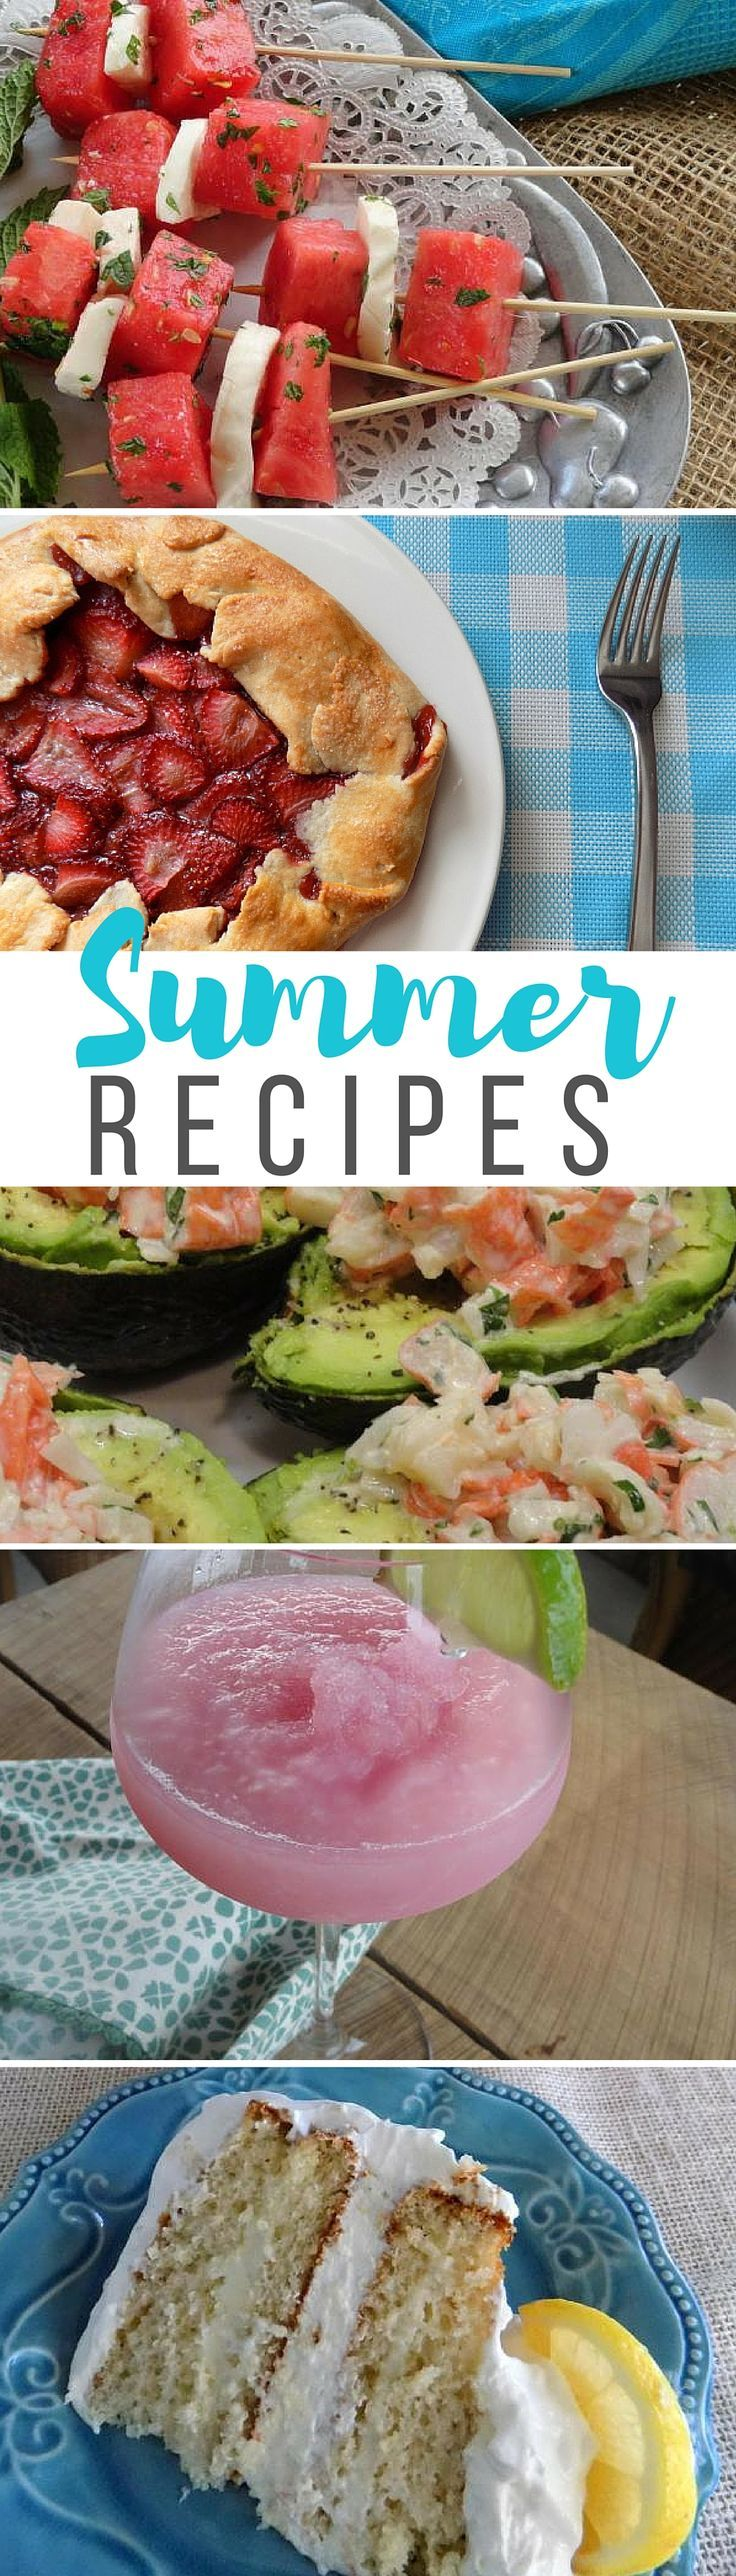 From Summer Side Dishes To Healthy Salads And More Stay Cool With Light And Easy Summer Recipes